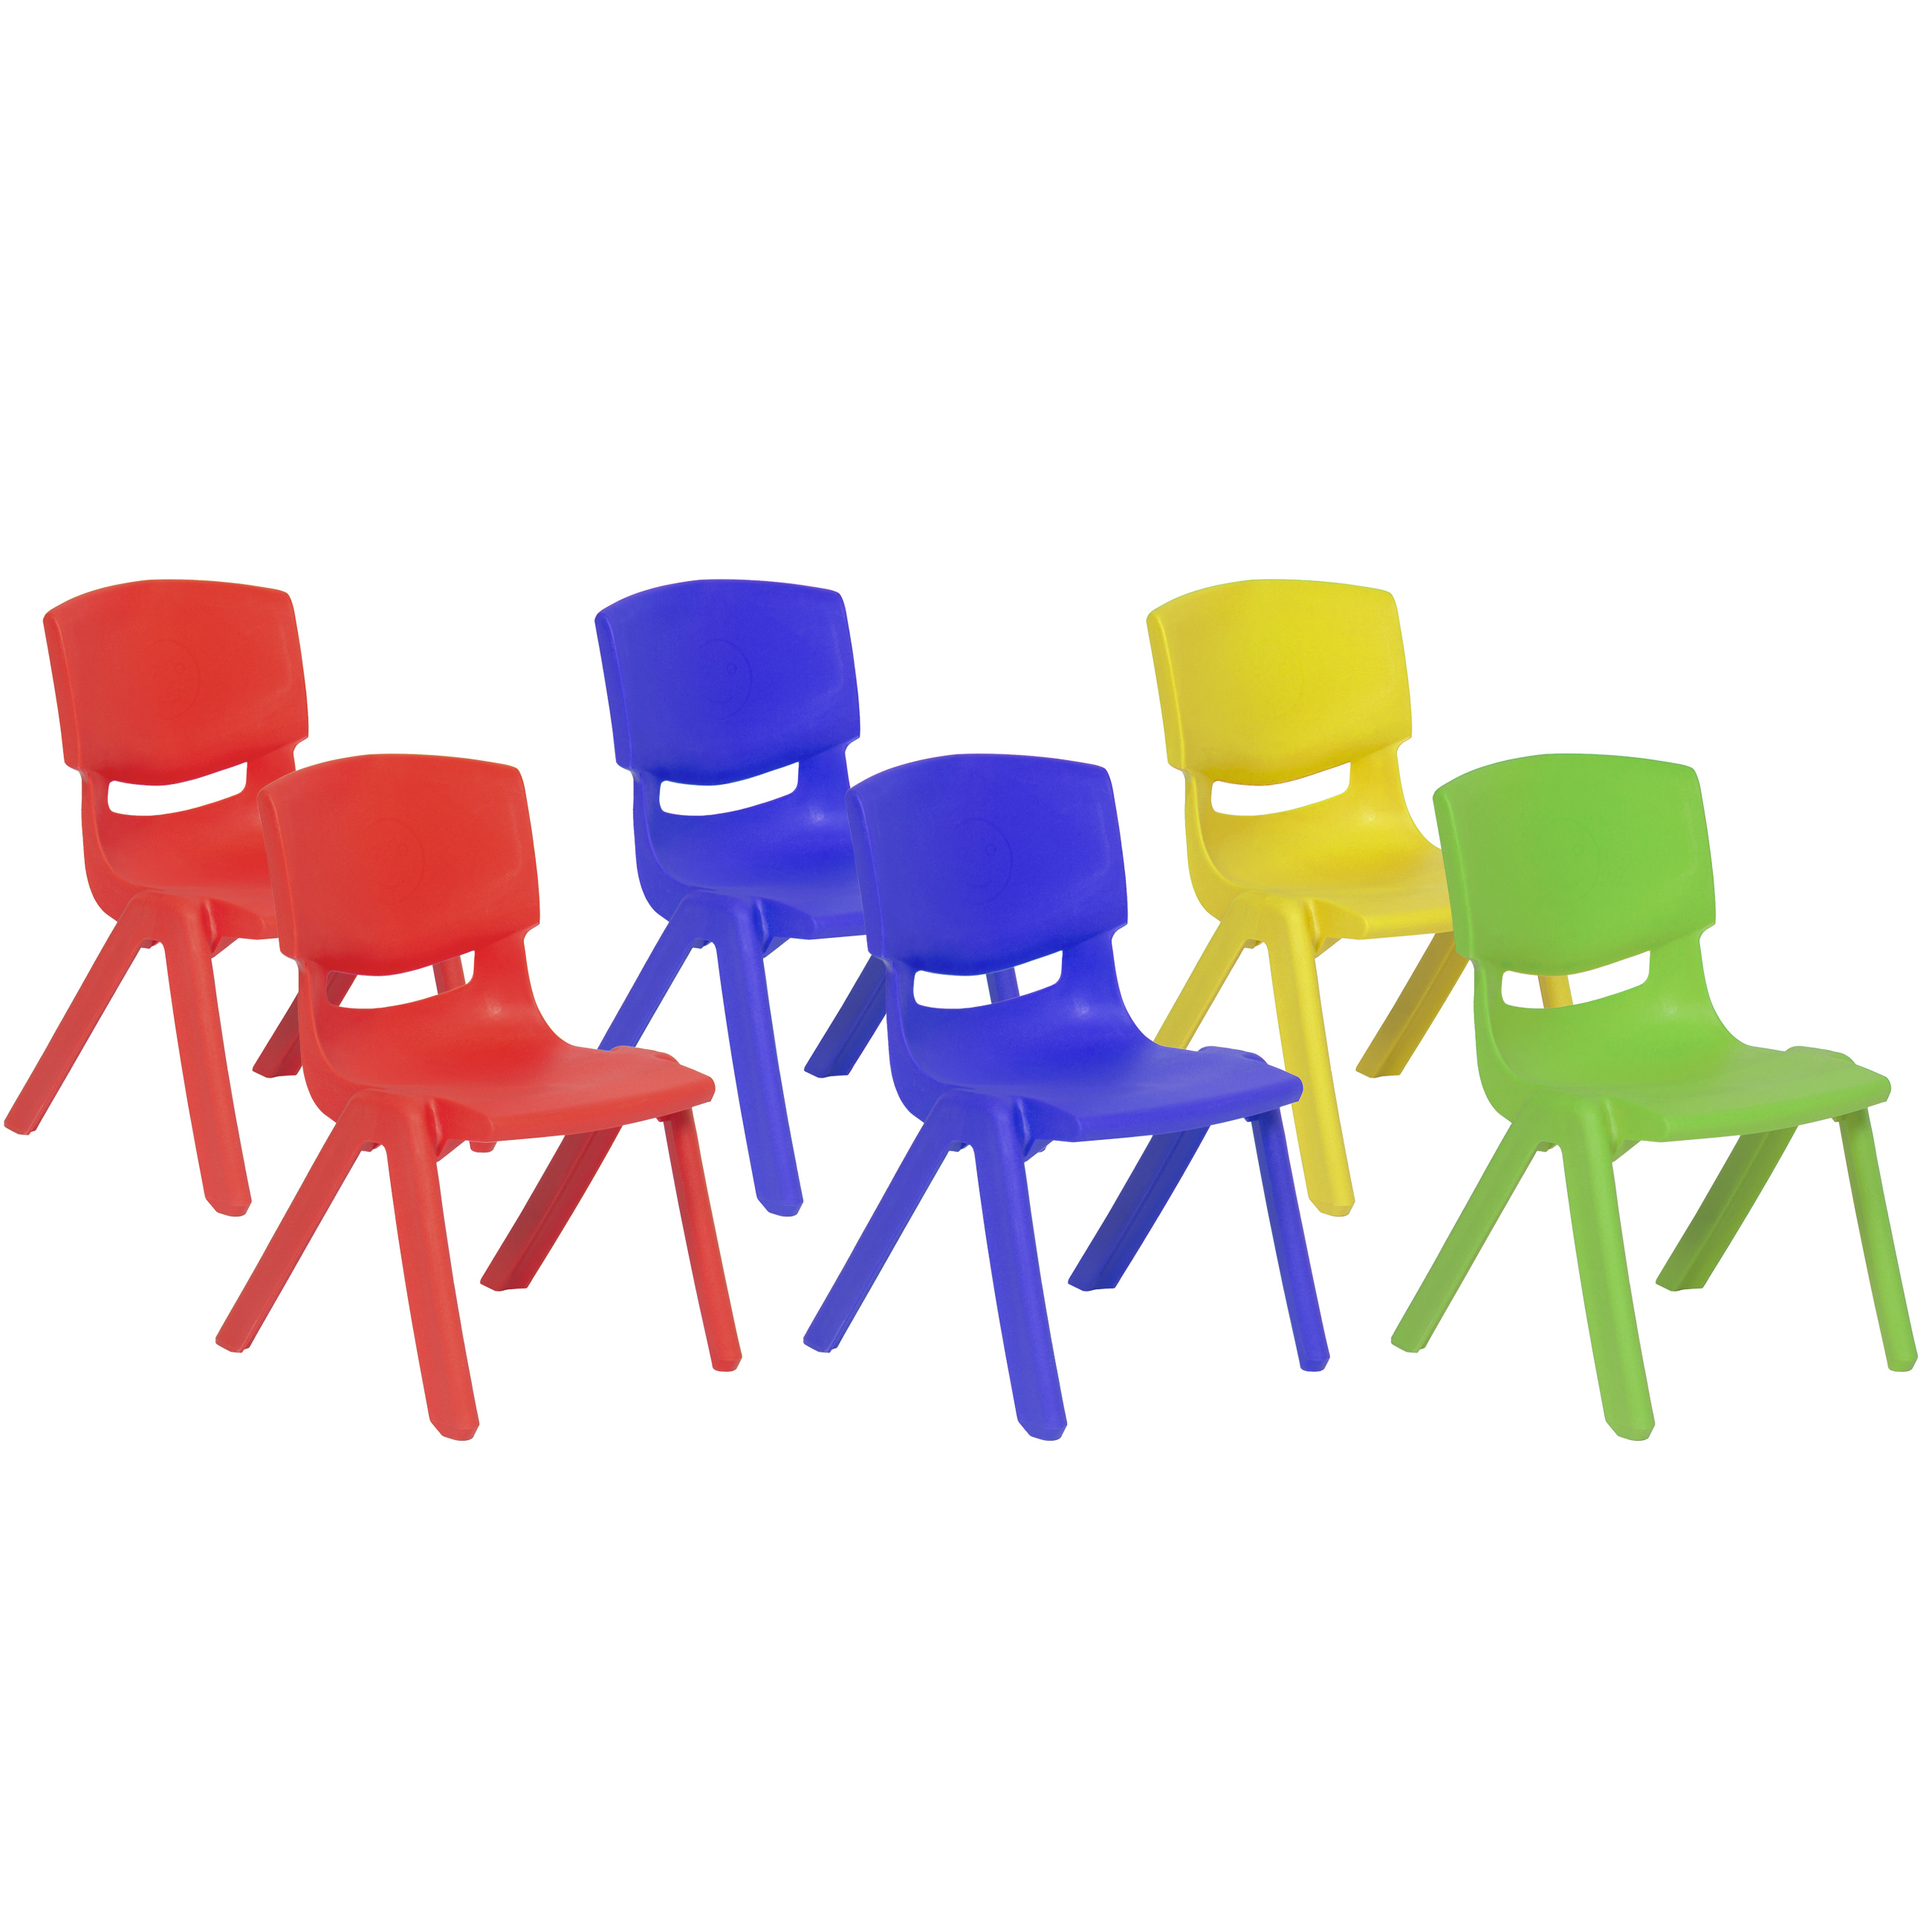 Best Choice Products Multicolor Set of 6 Kids Plastic Stacking School Chairs, 10� Height Colorful Stackable Seat by